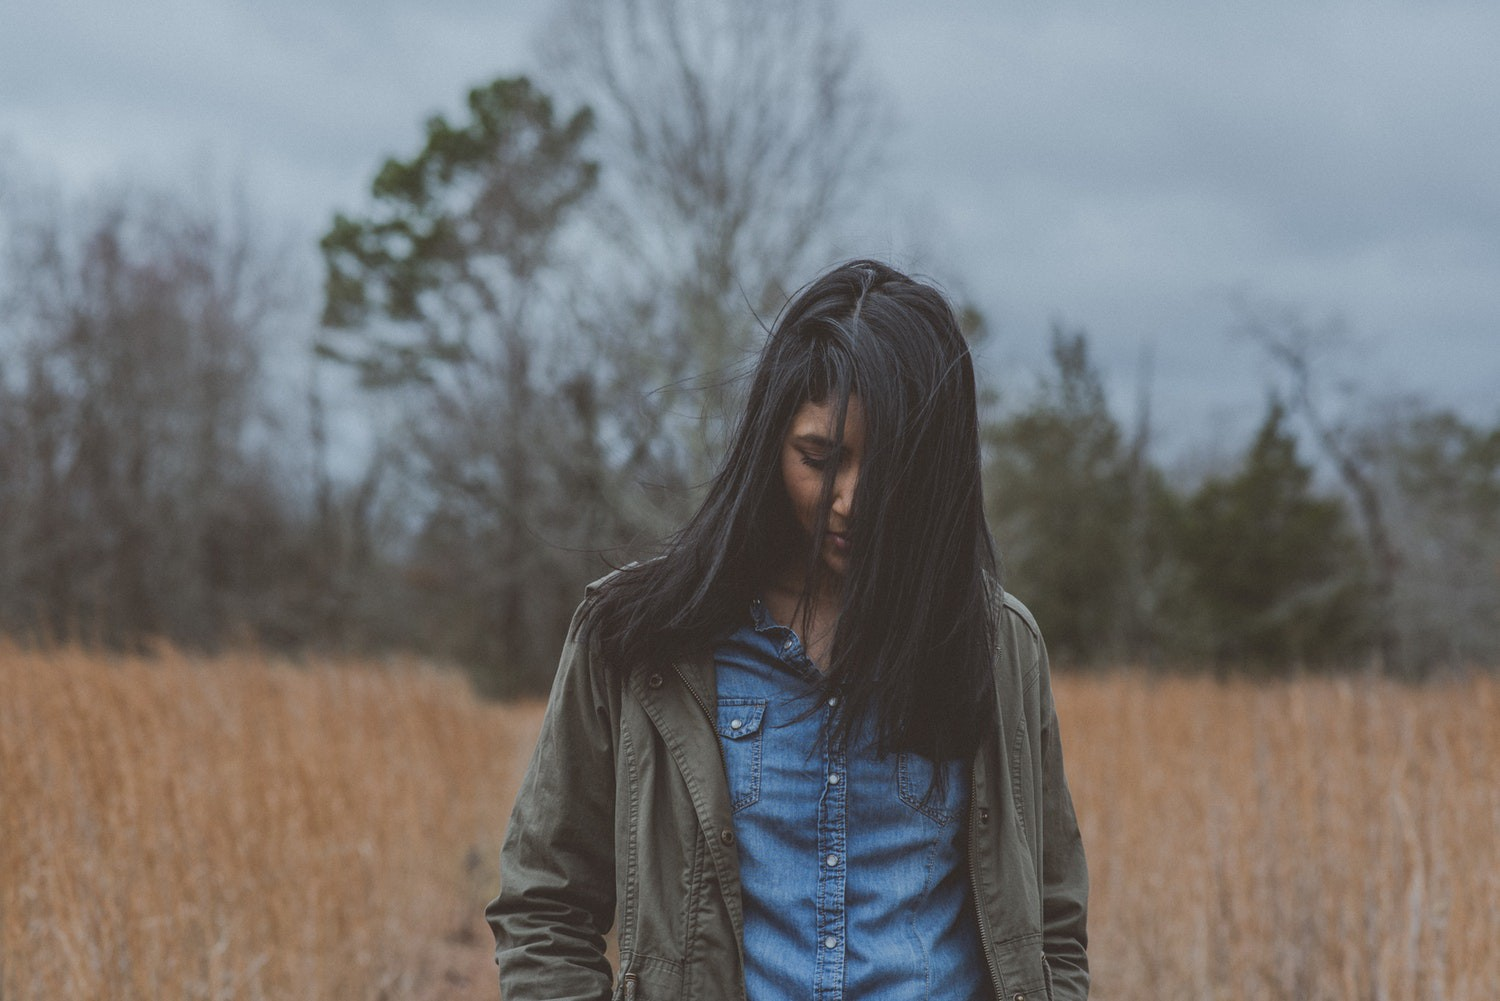 An Open Letter To You For When You're Sad or Depressed